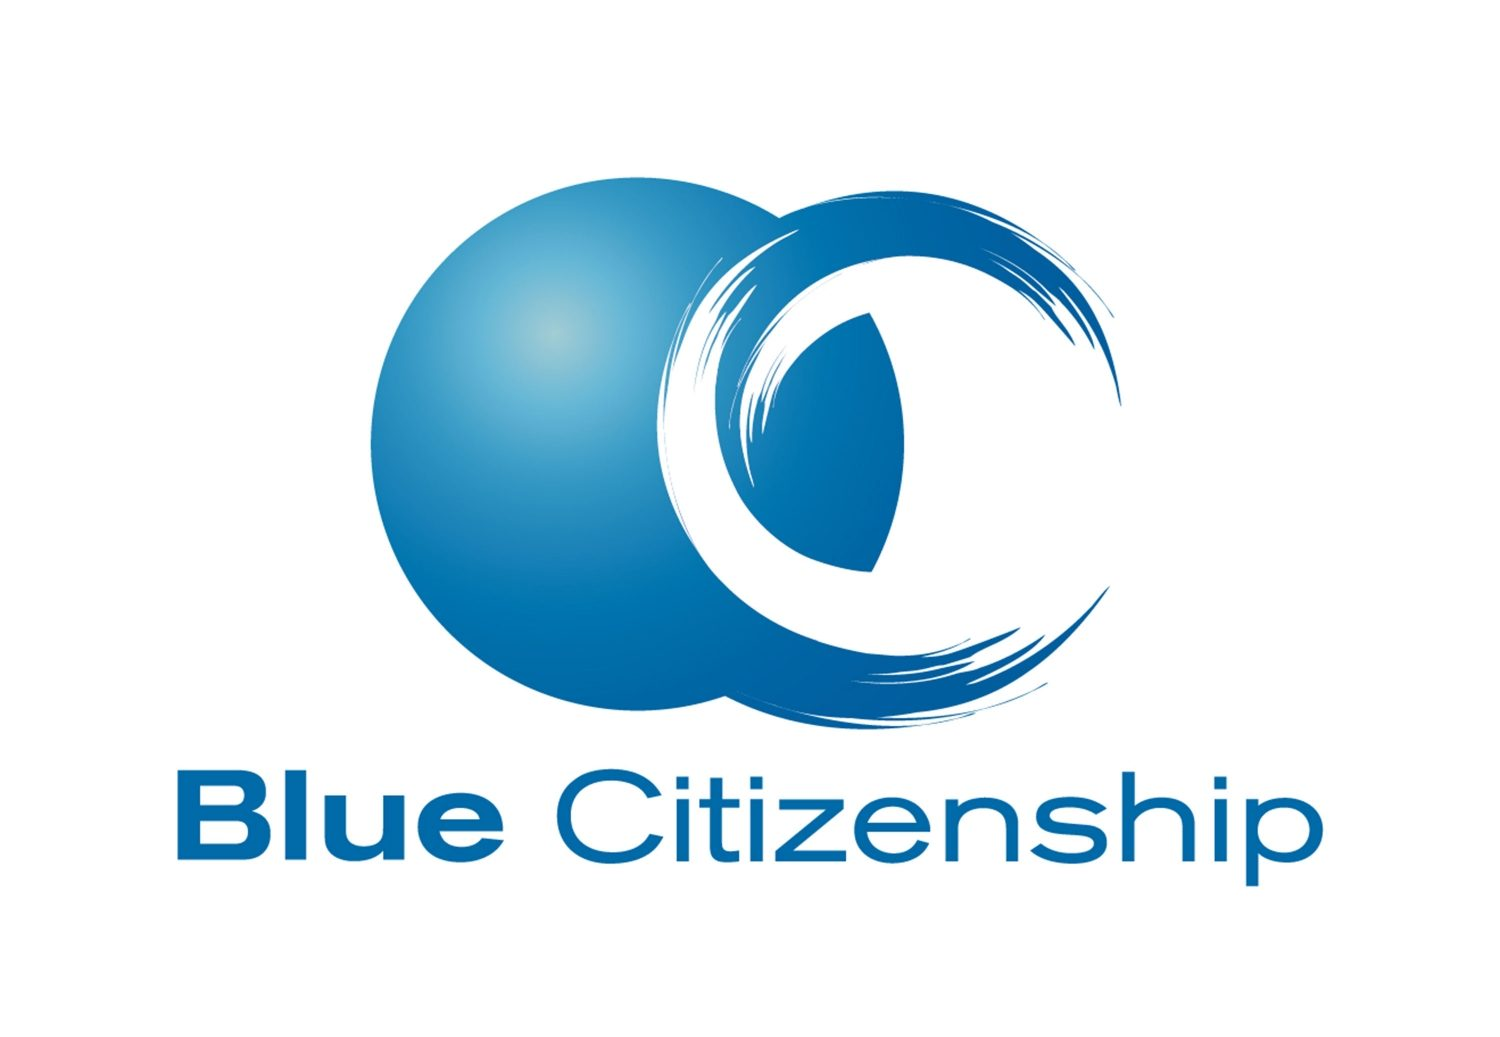 Blue-Citizenship